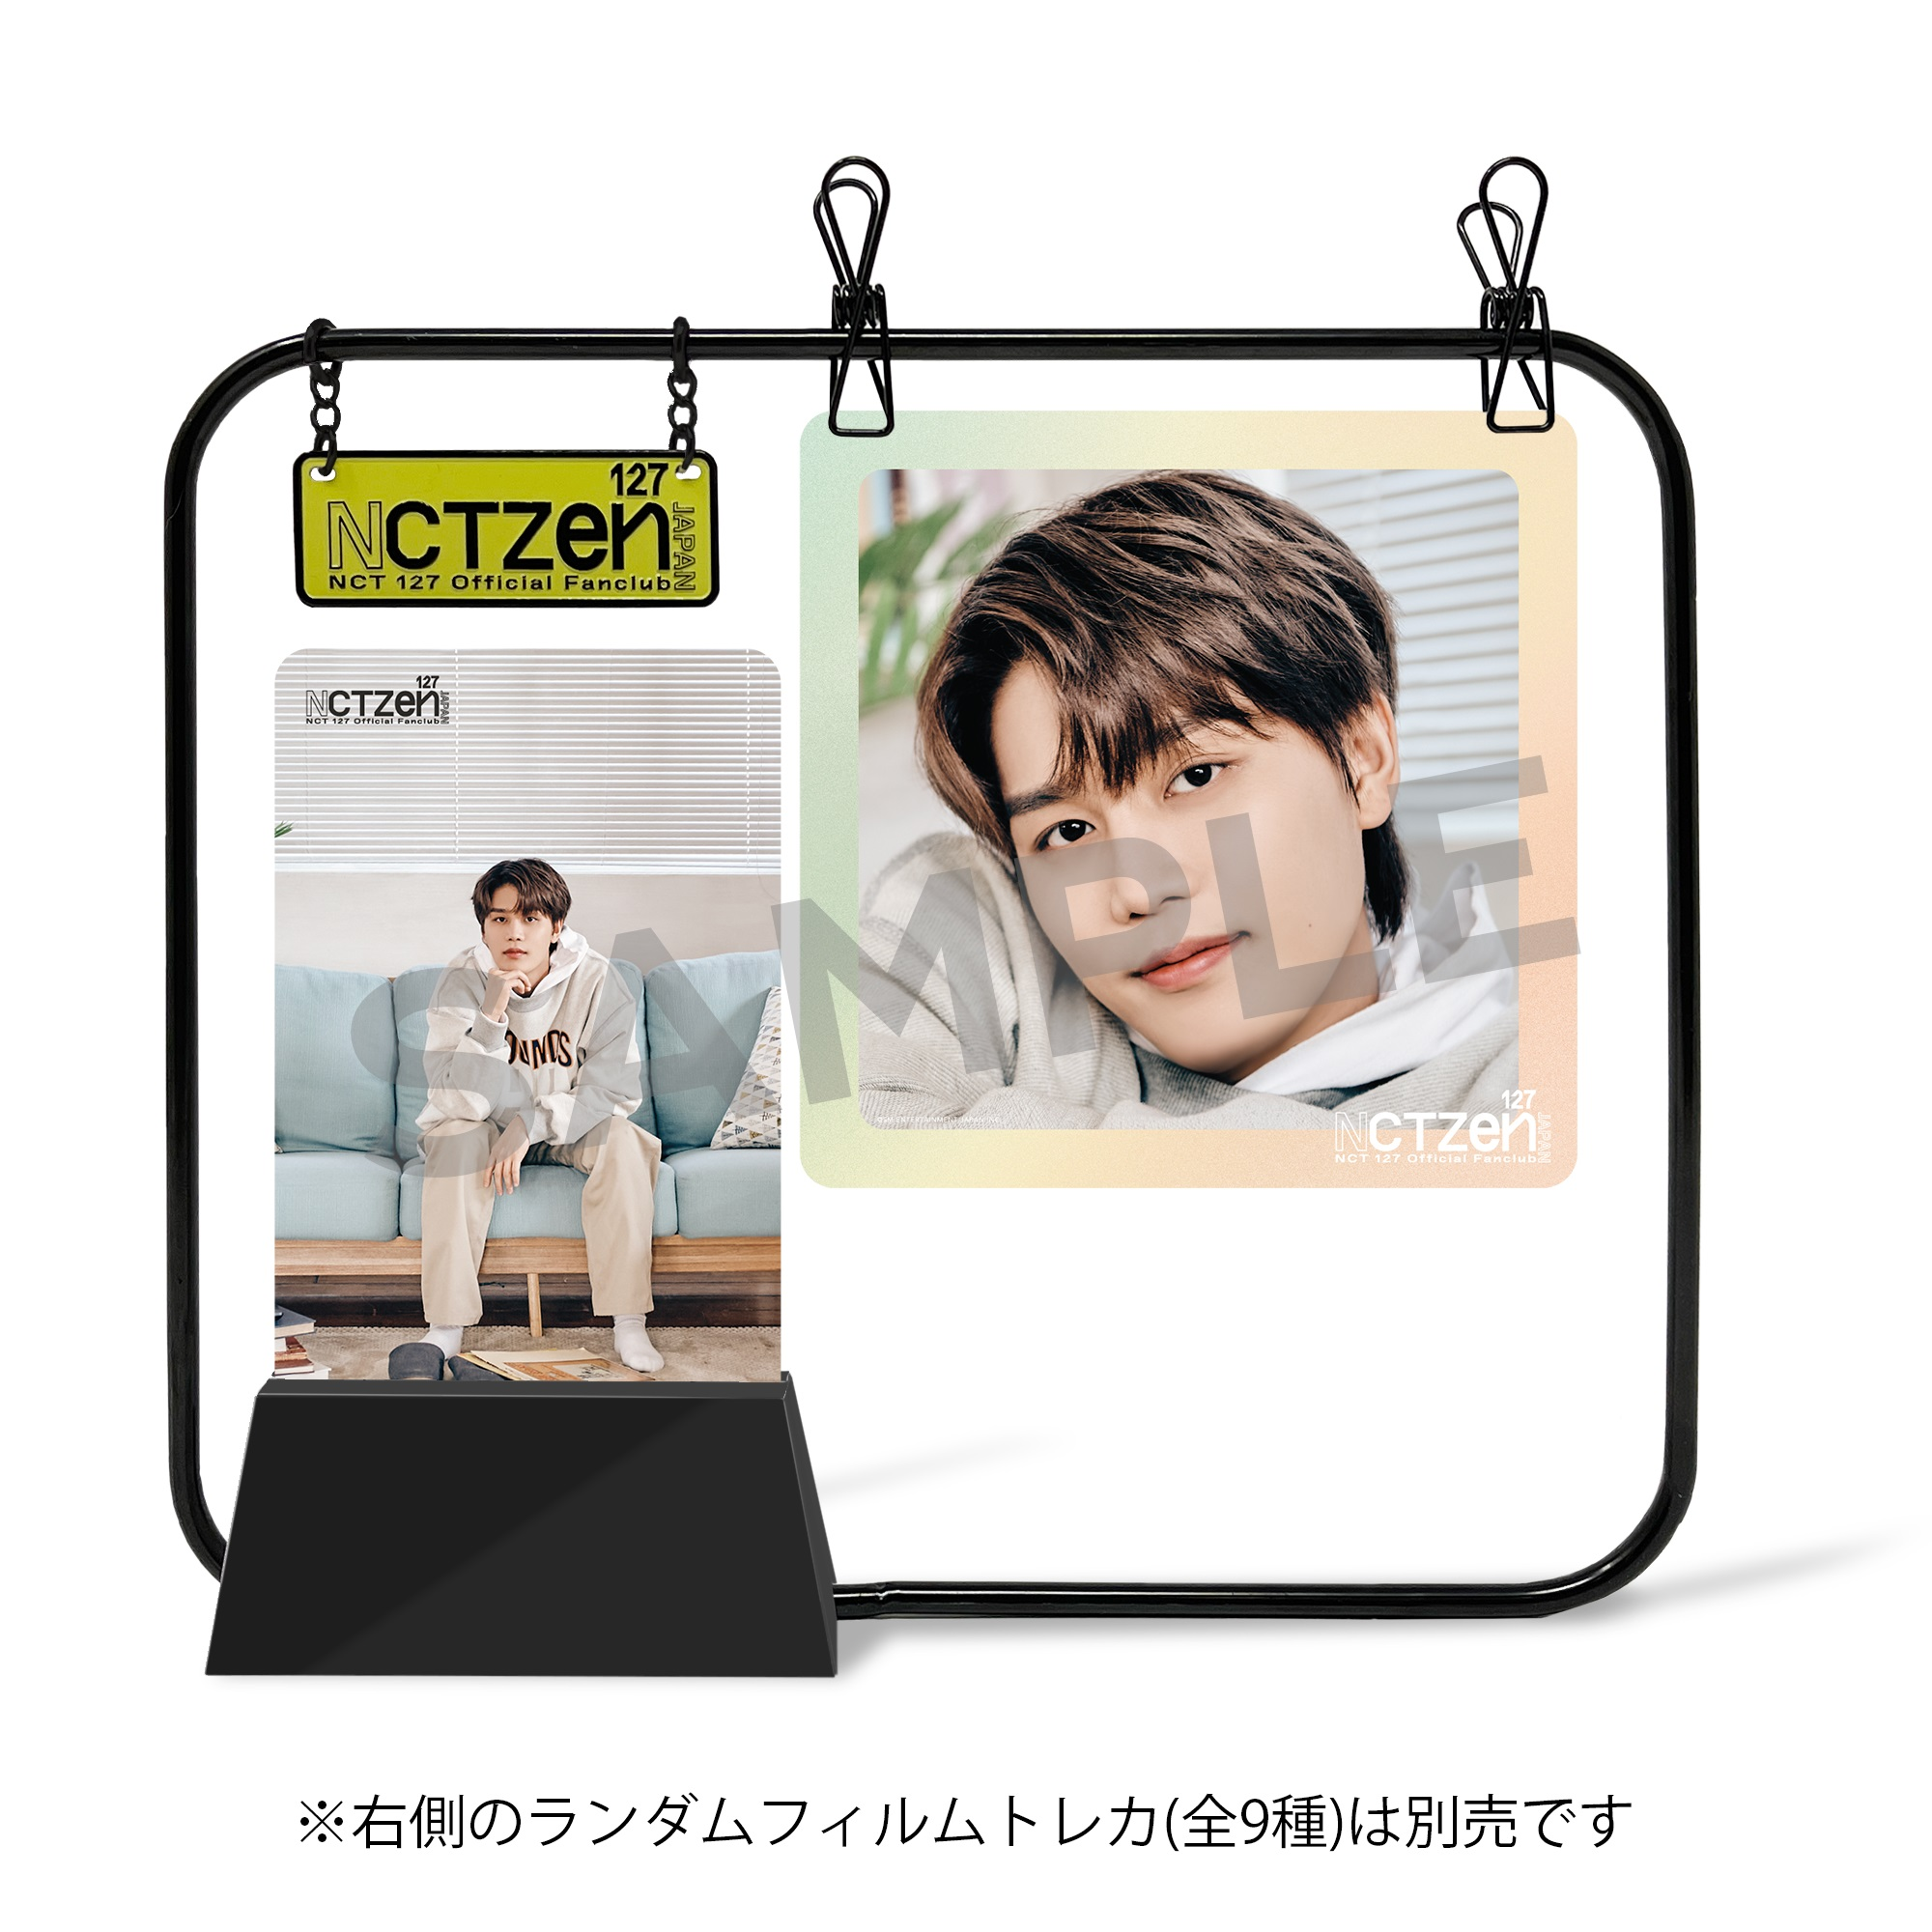 【NCT 127】『NCT 127 OFFICIAL BOOK Vol.4』グッズを、メンバー別に詳しく紹介!_2_4